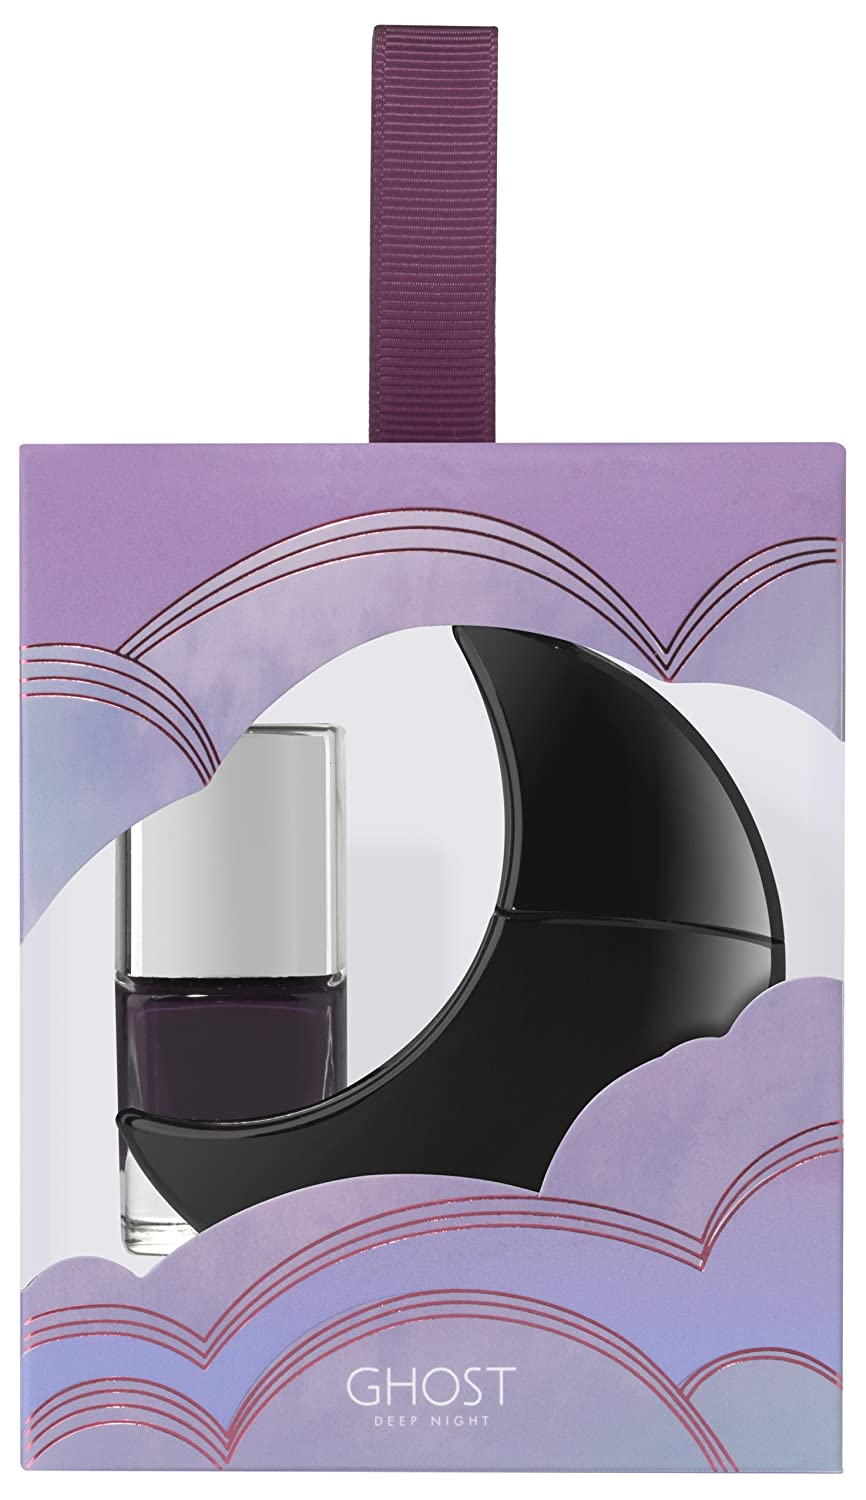 Ghost Deep Night Eau de Toilette Spray, 10 ml and Nail Polish, 5 ml Designer Parfums GHTSET1093